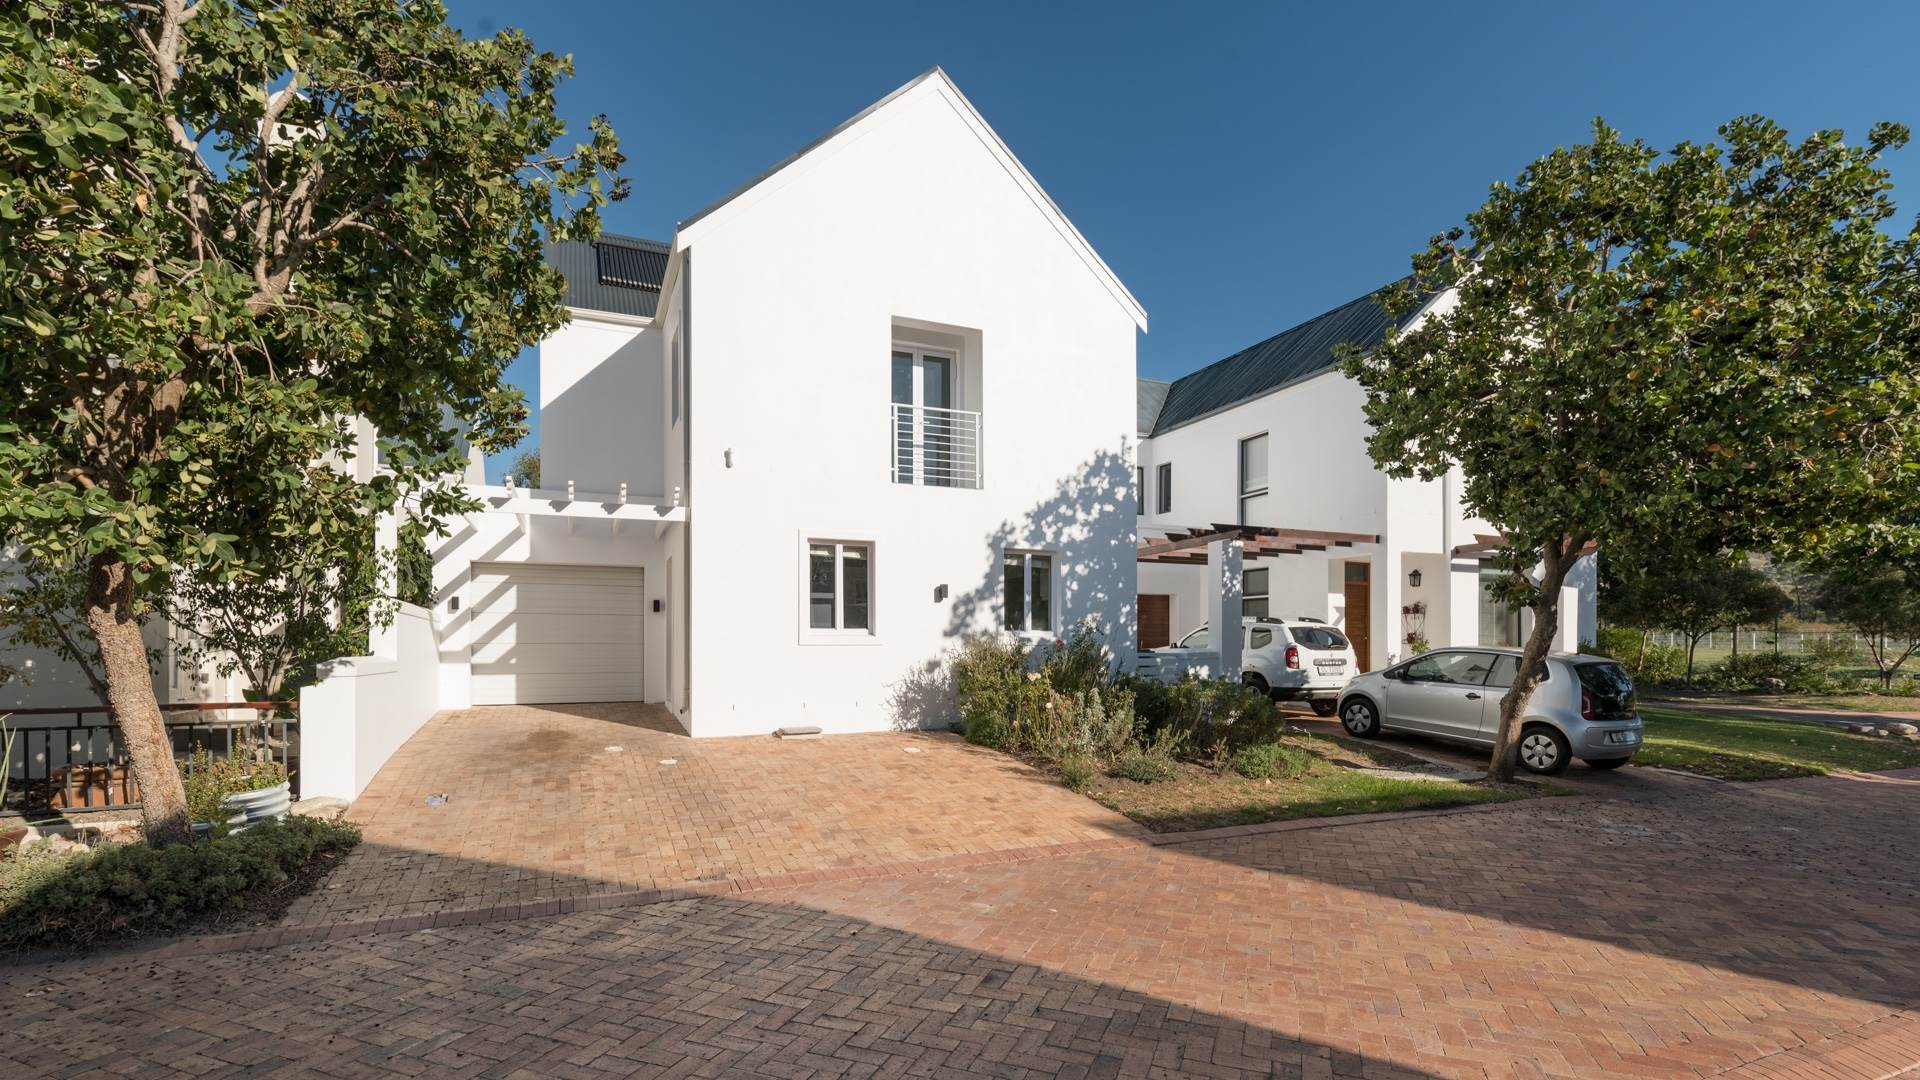 3 BedroomHouse For Sale In Kylemore